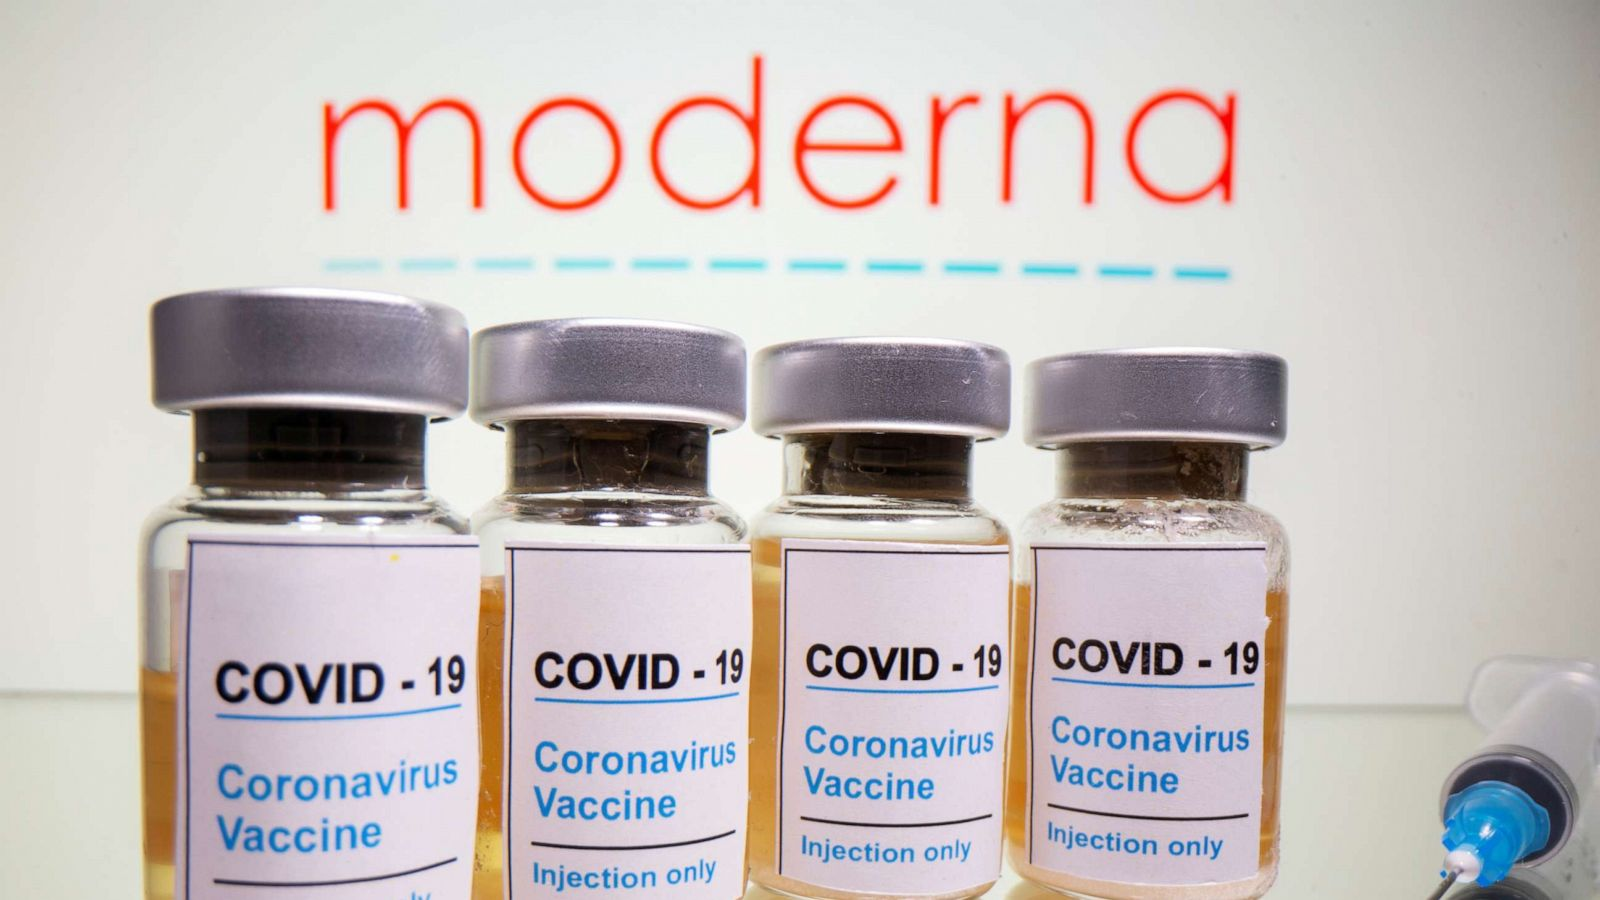 Moderna's coronavirus vaccine is 94.5% effective, according to company data